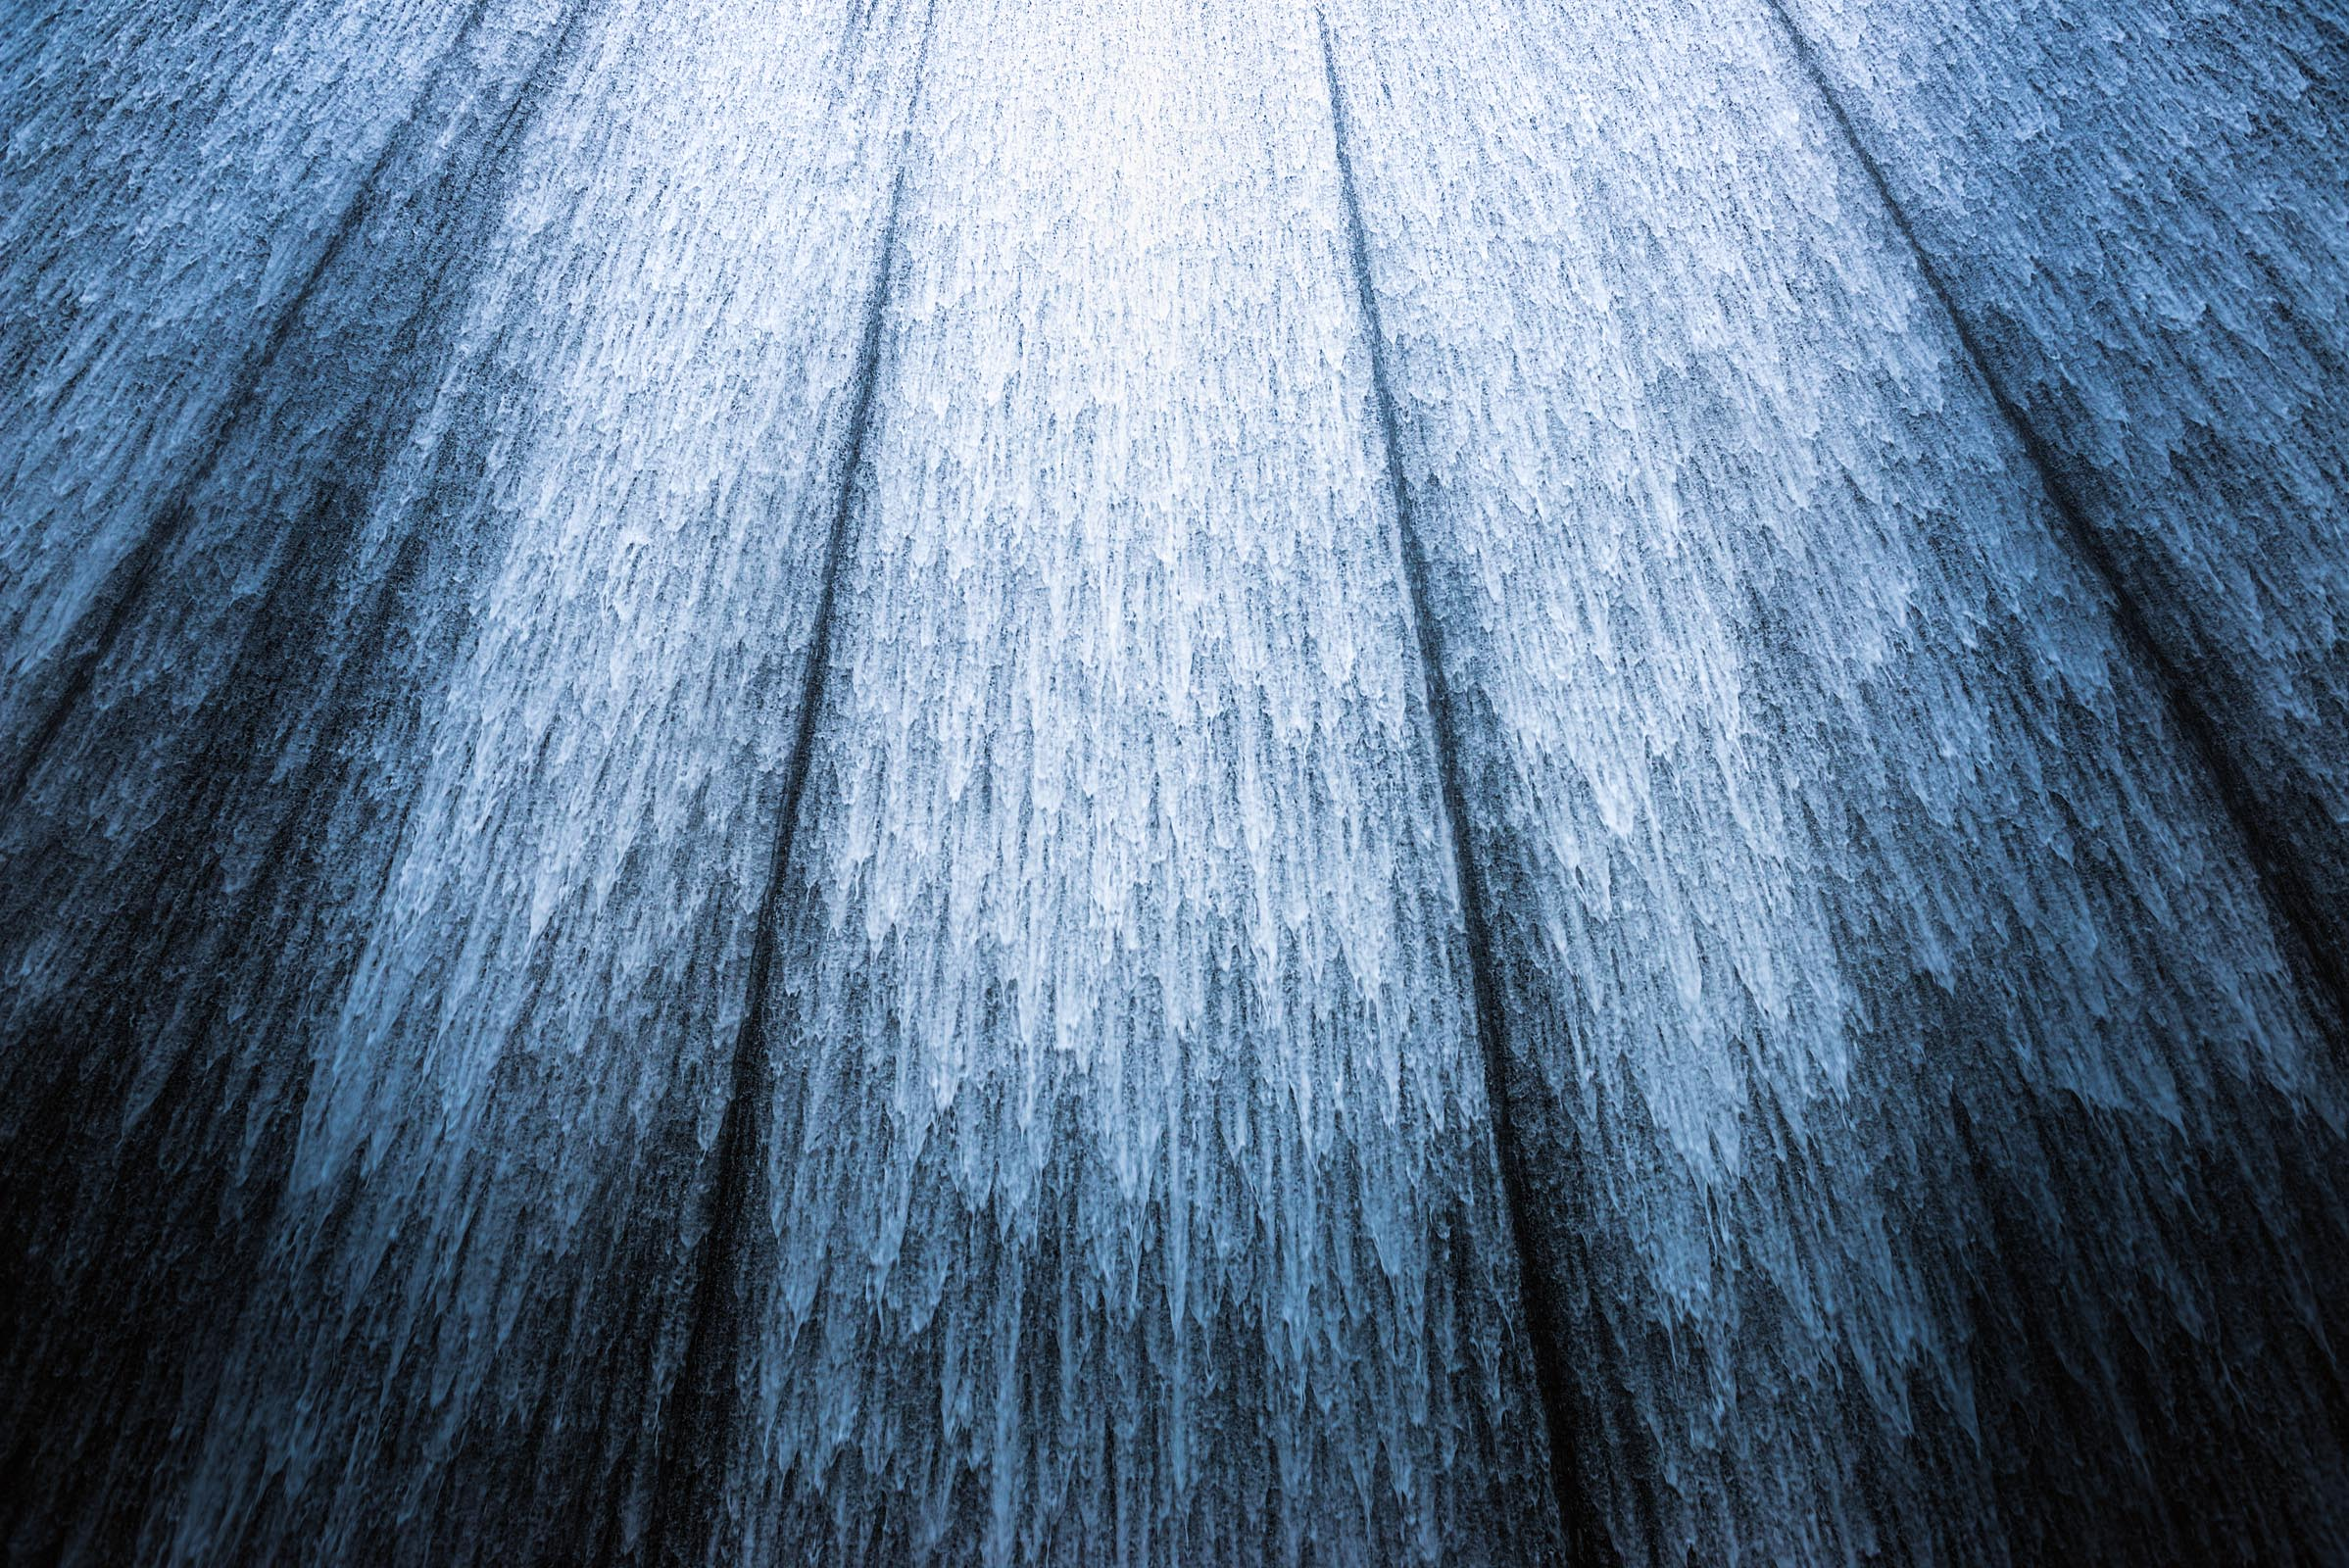 Photograph of Waterwall in Houston, Texas by Brent Goldman Photography